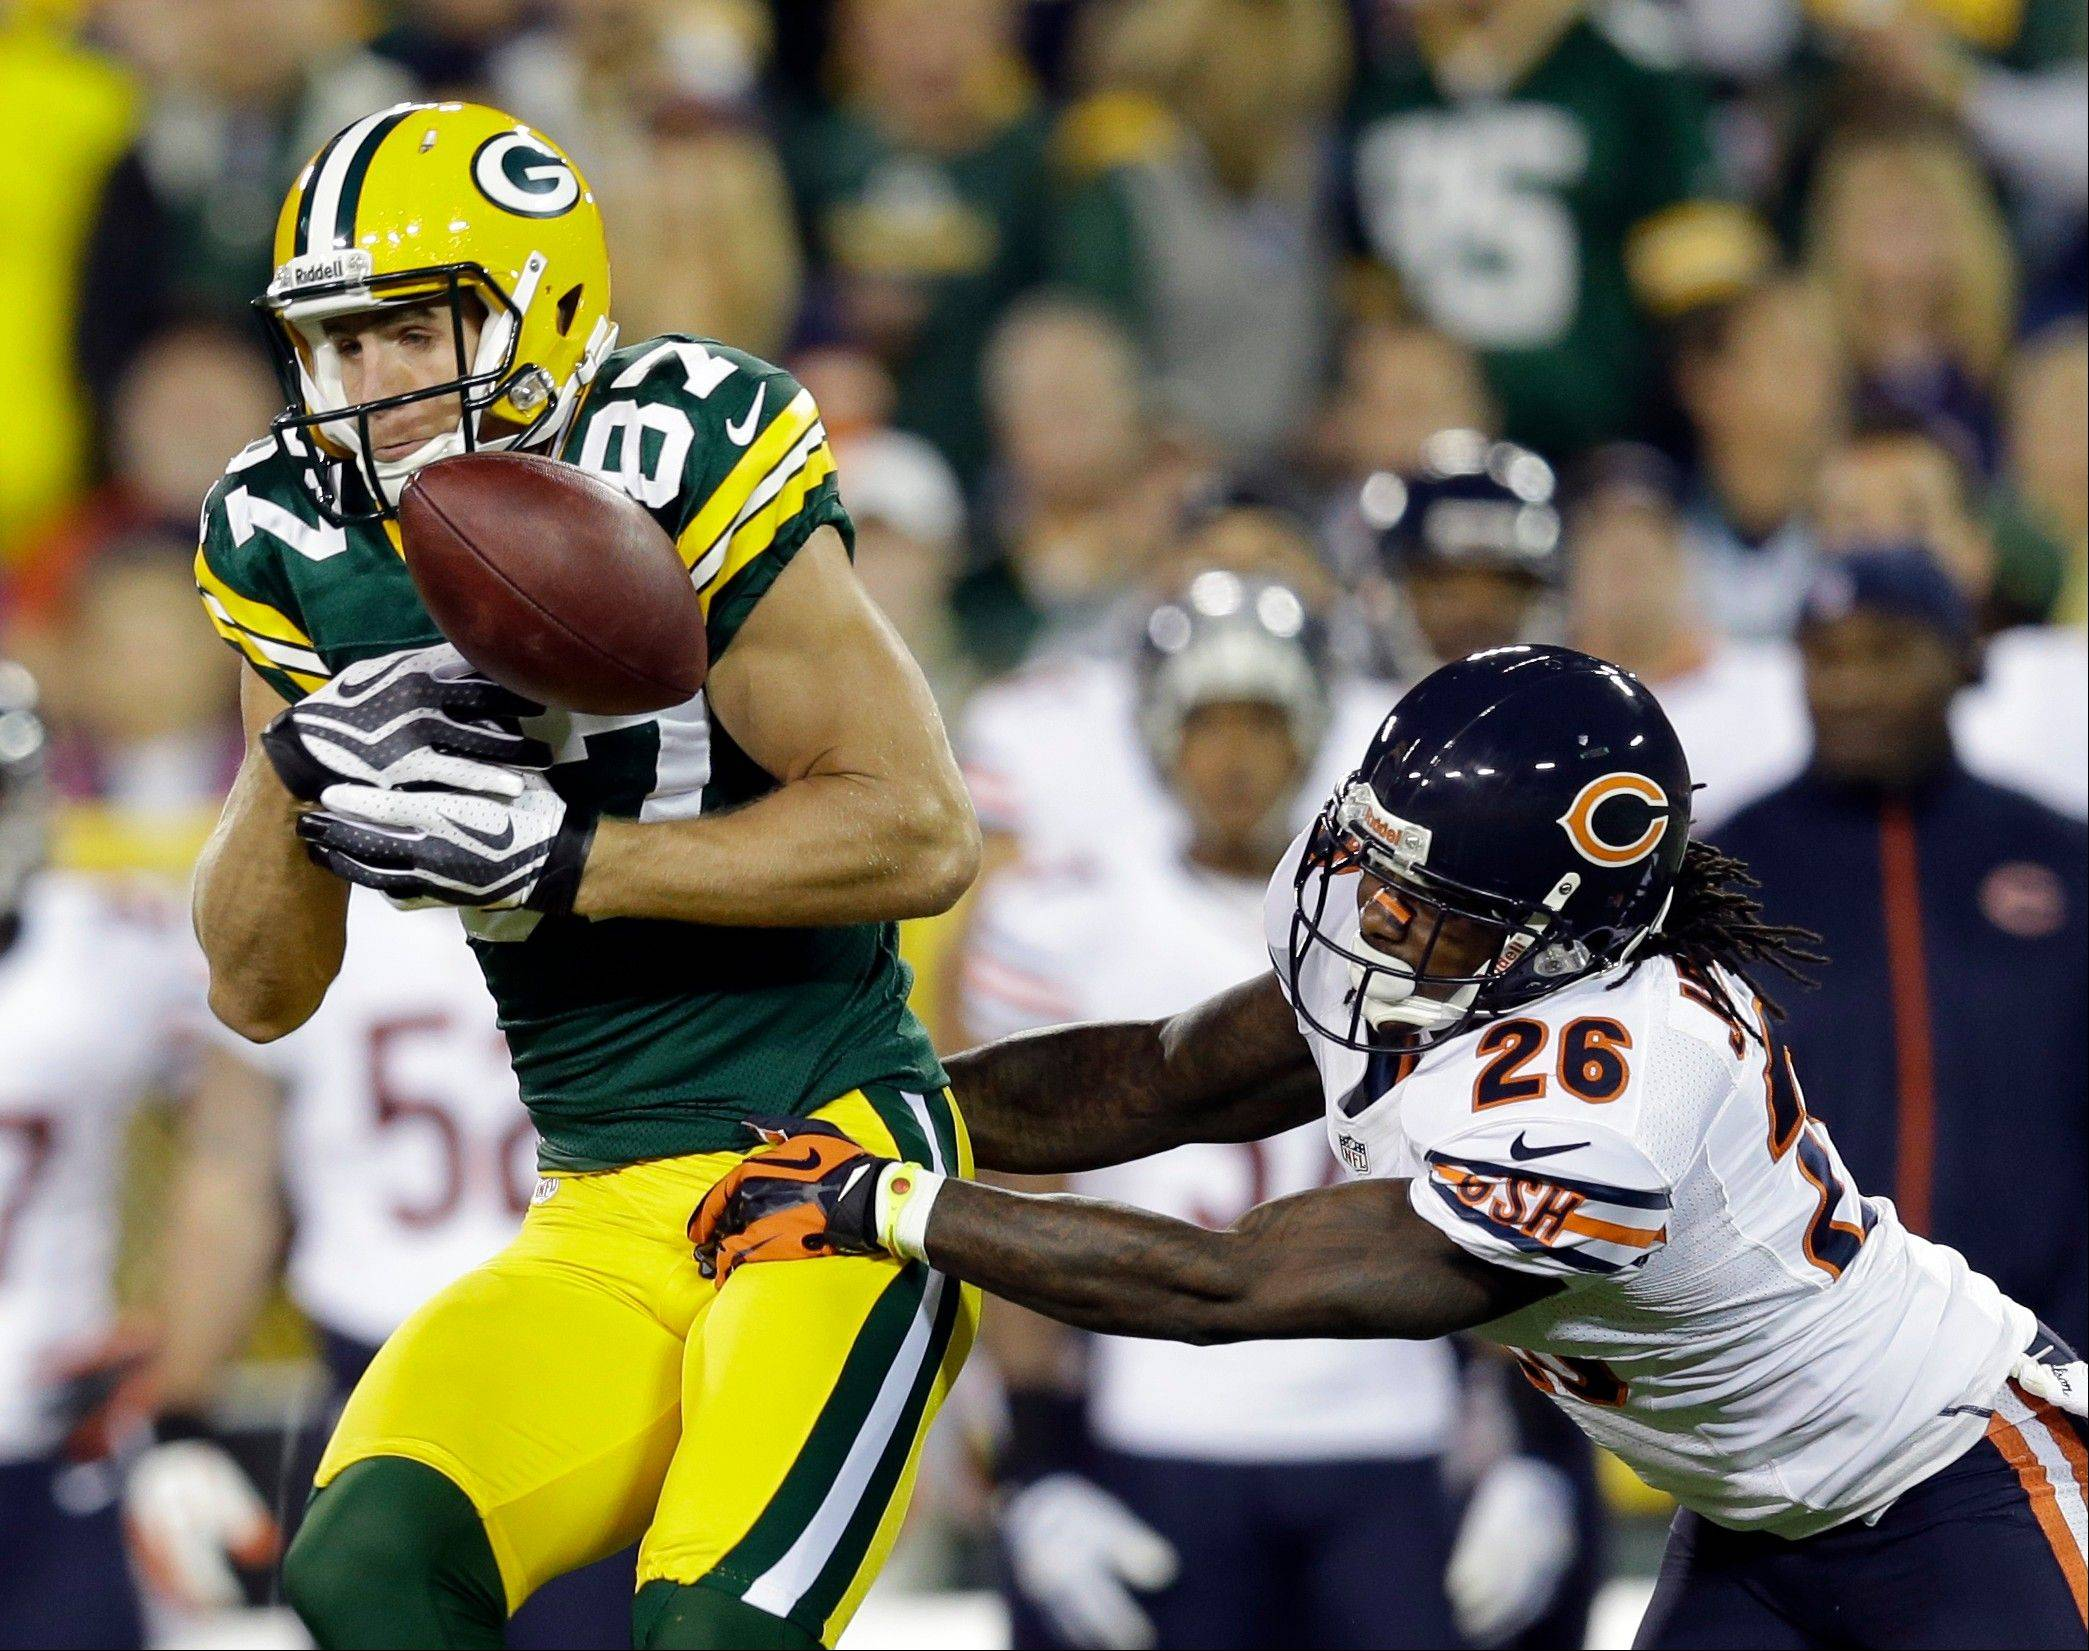 Chicago Bears cornerback Tim Jennings breaks up a pass intended for Green Bay Packers wide receiver Jordy Nelson during the first half.